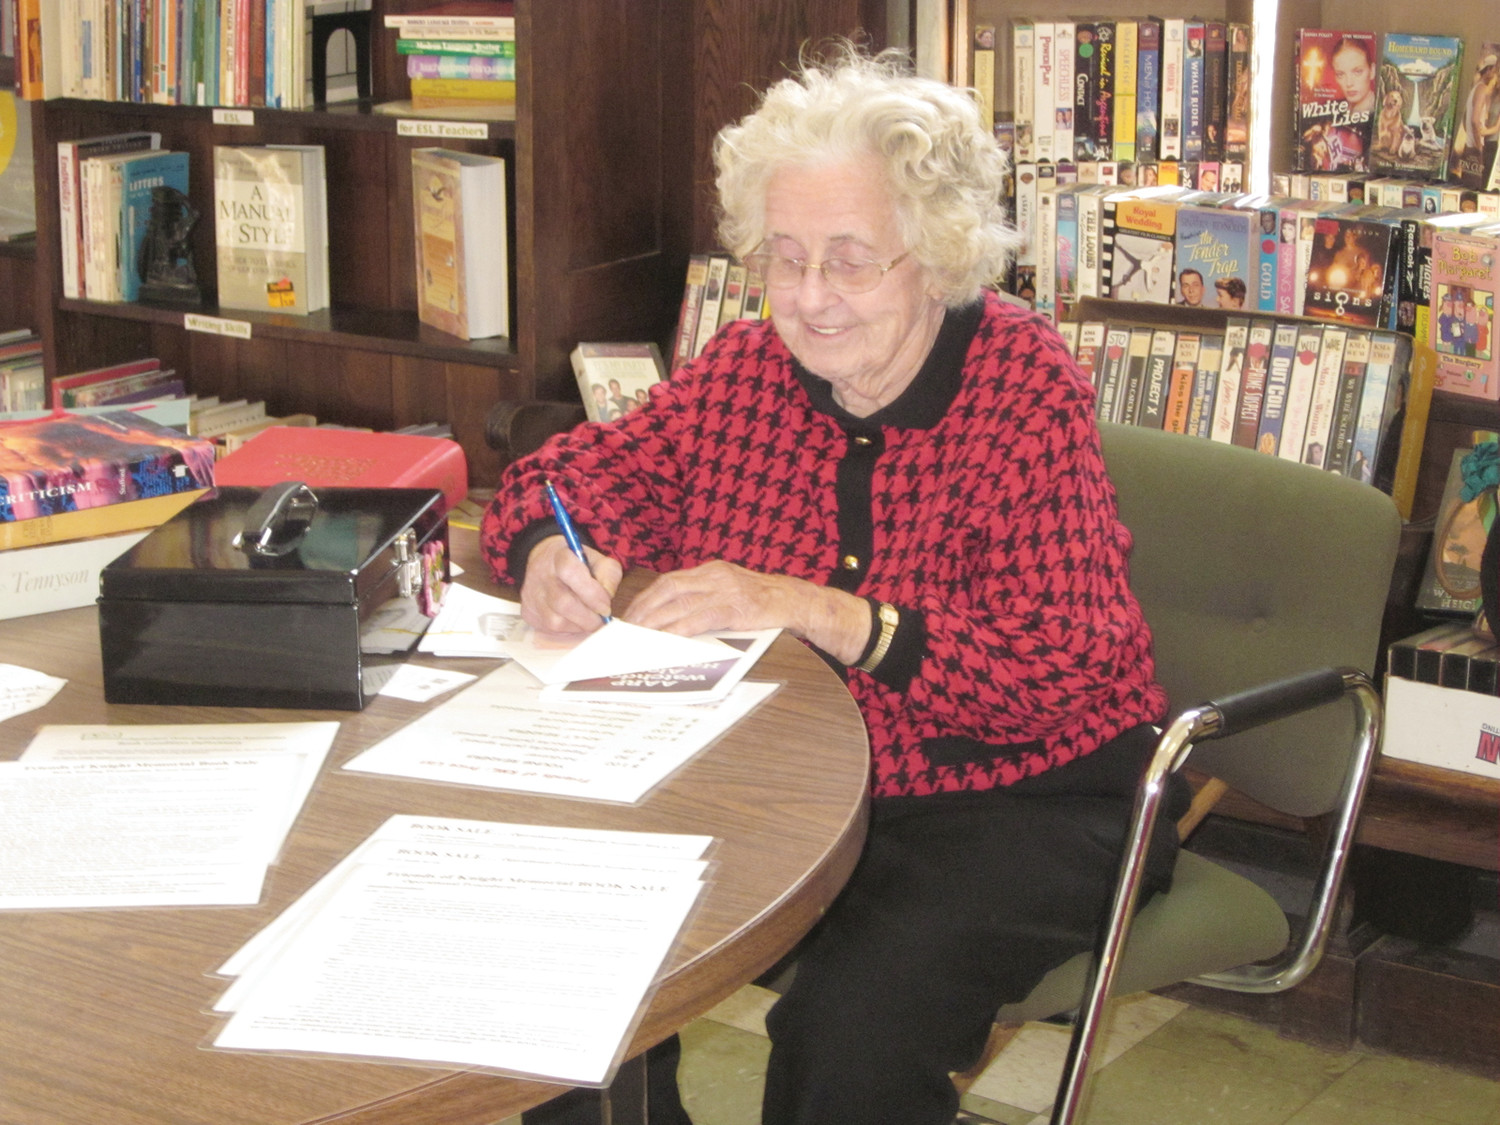 SPEAK SOFTLY AND CARRY A BIG SMILE: Harriet Dever, doing what she loved best, giving back to her community. She is diligently working on the Book Sale at her cherished Knight Memorial Library in 2014.